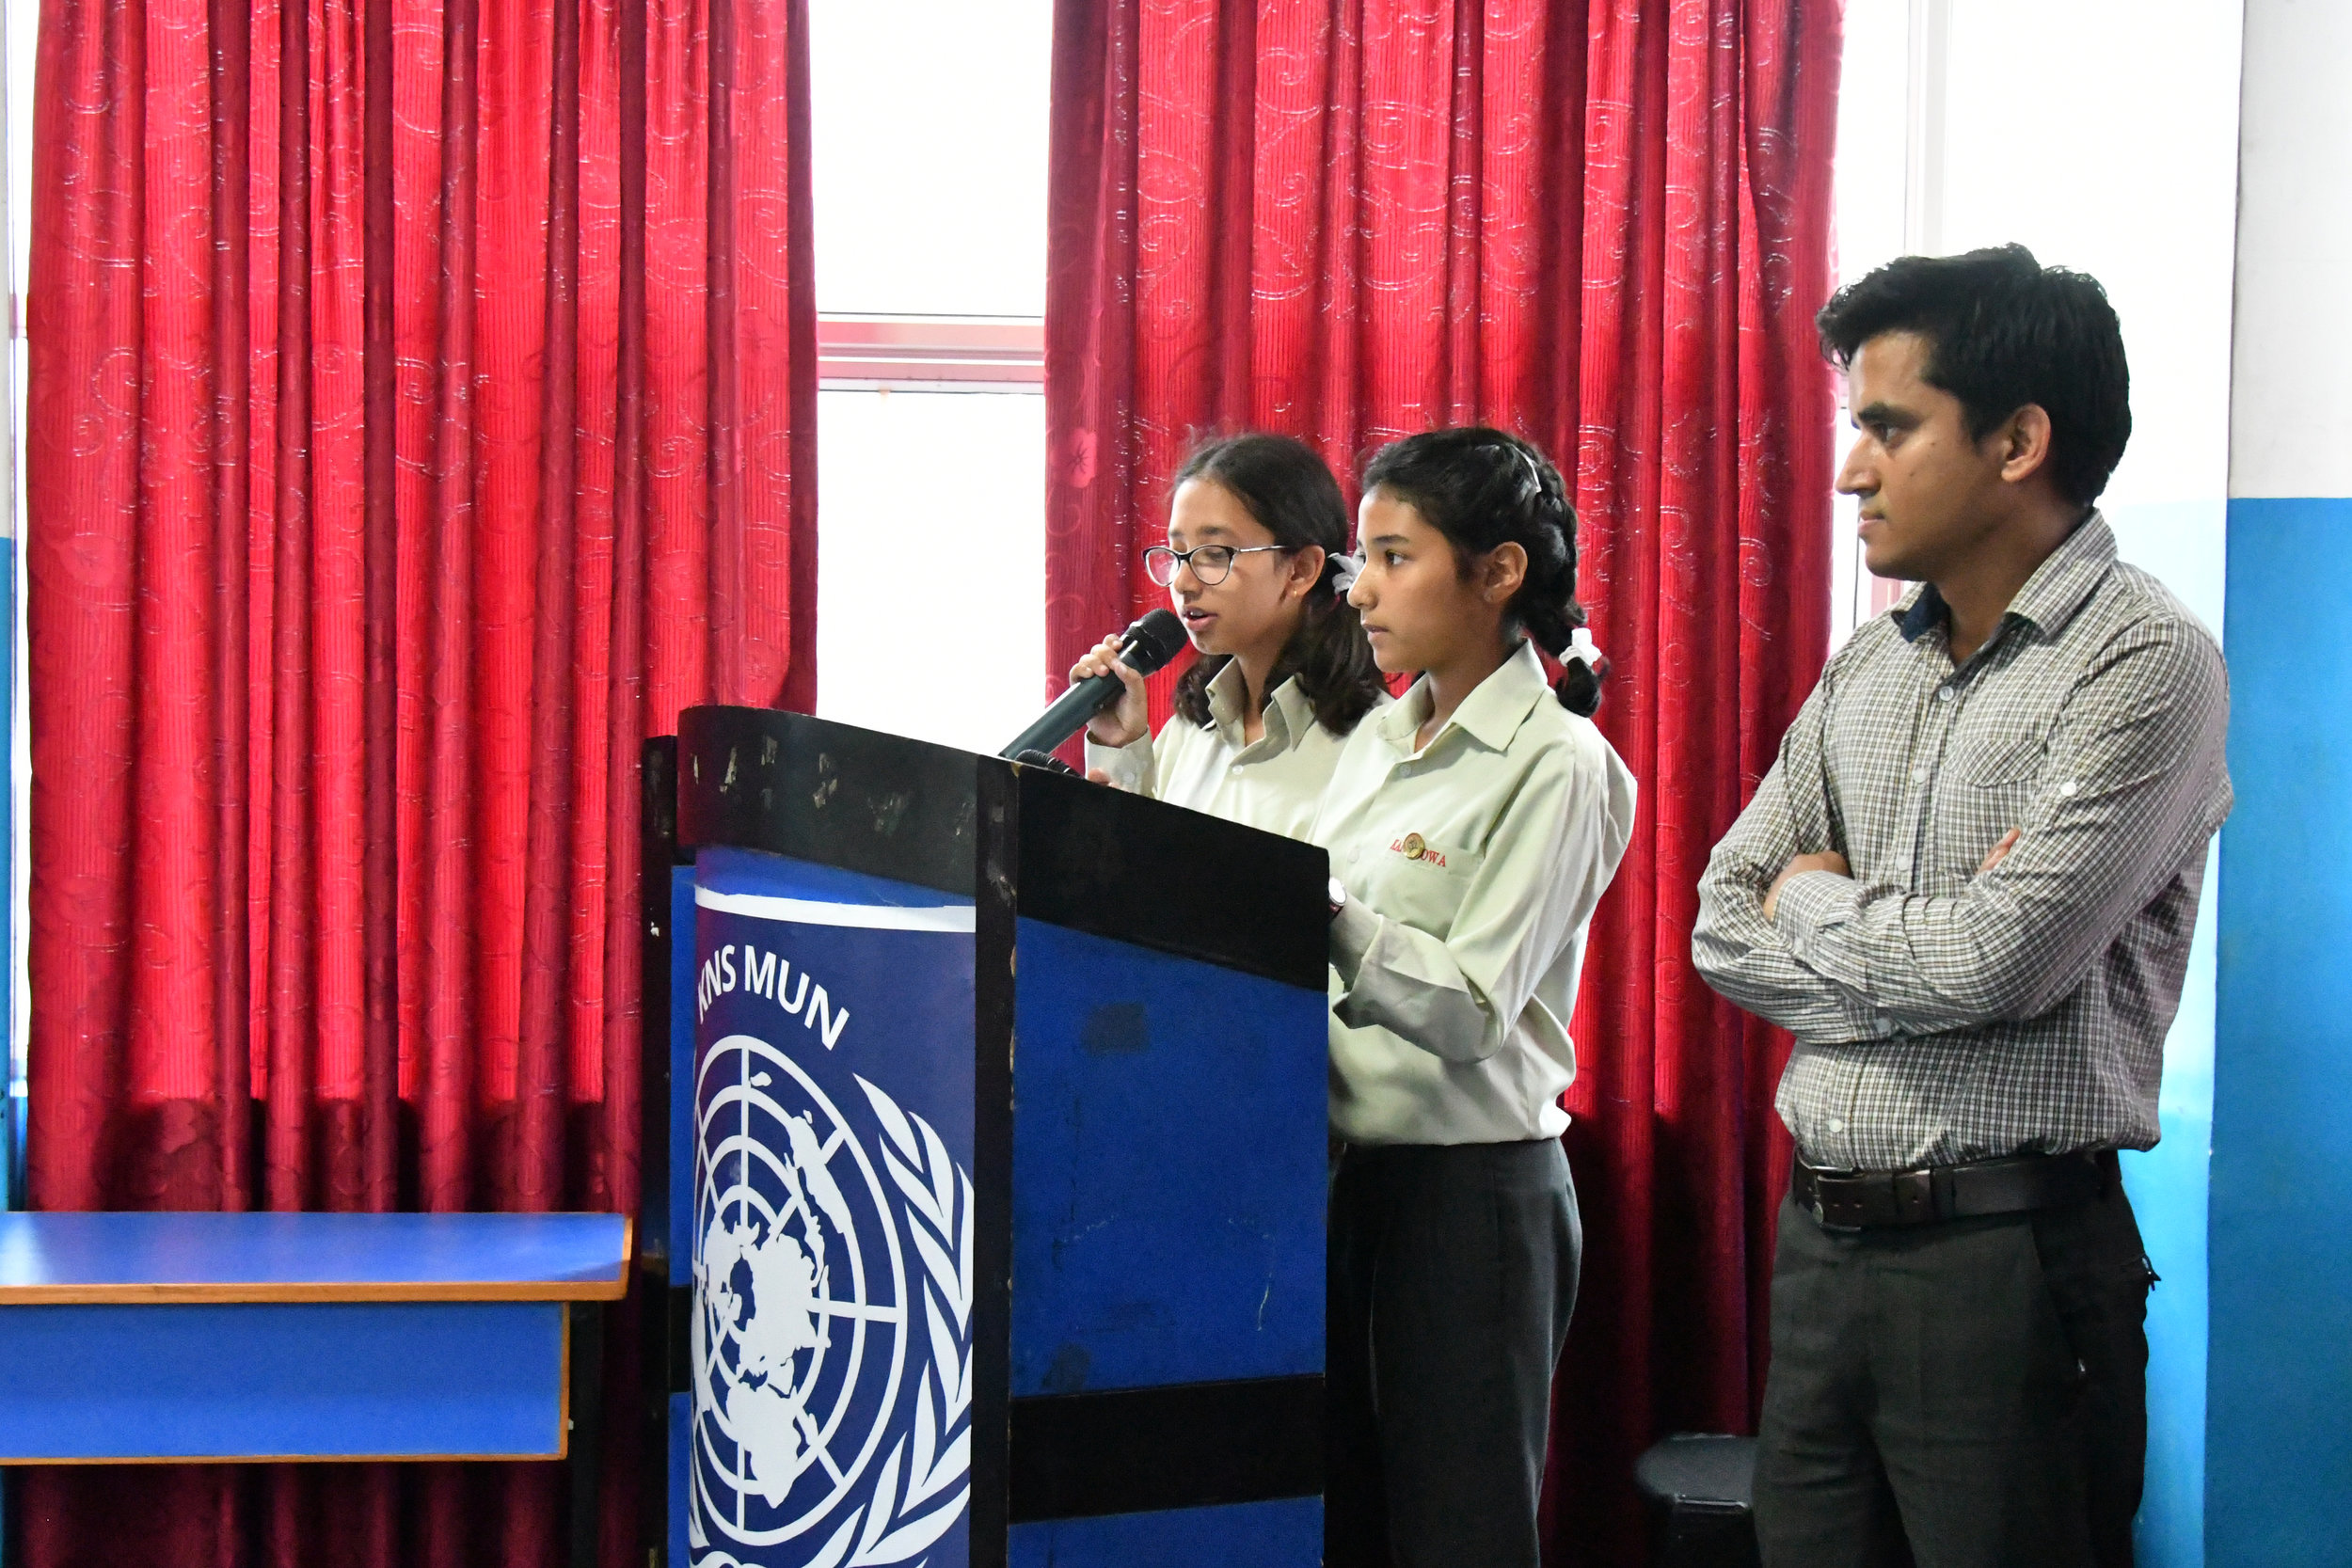 mck nepal 2017 presentation by female students DSC_4162.jpg